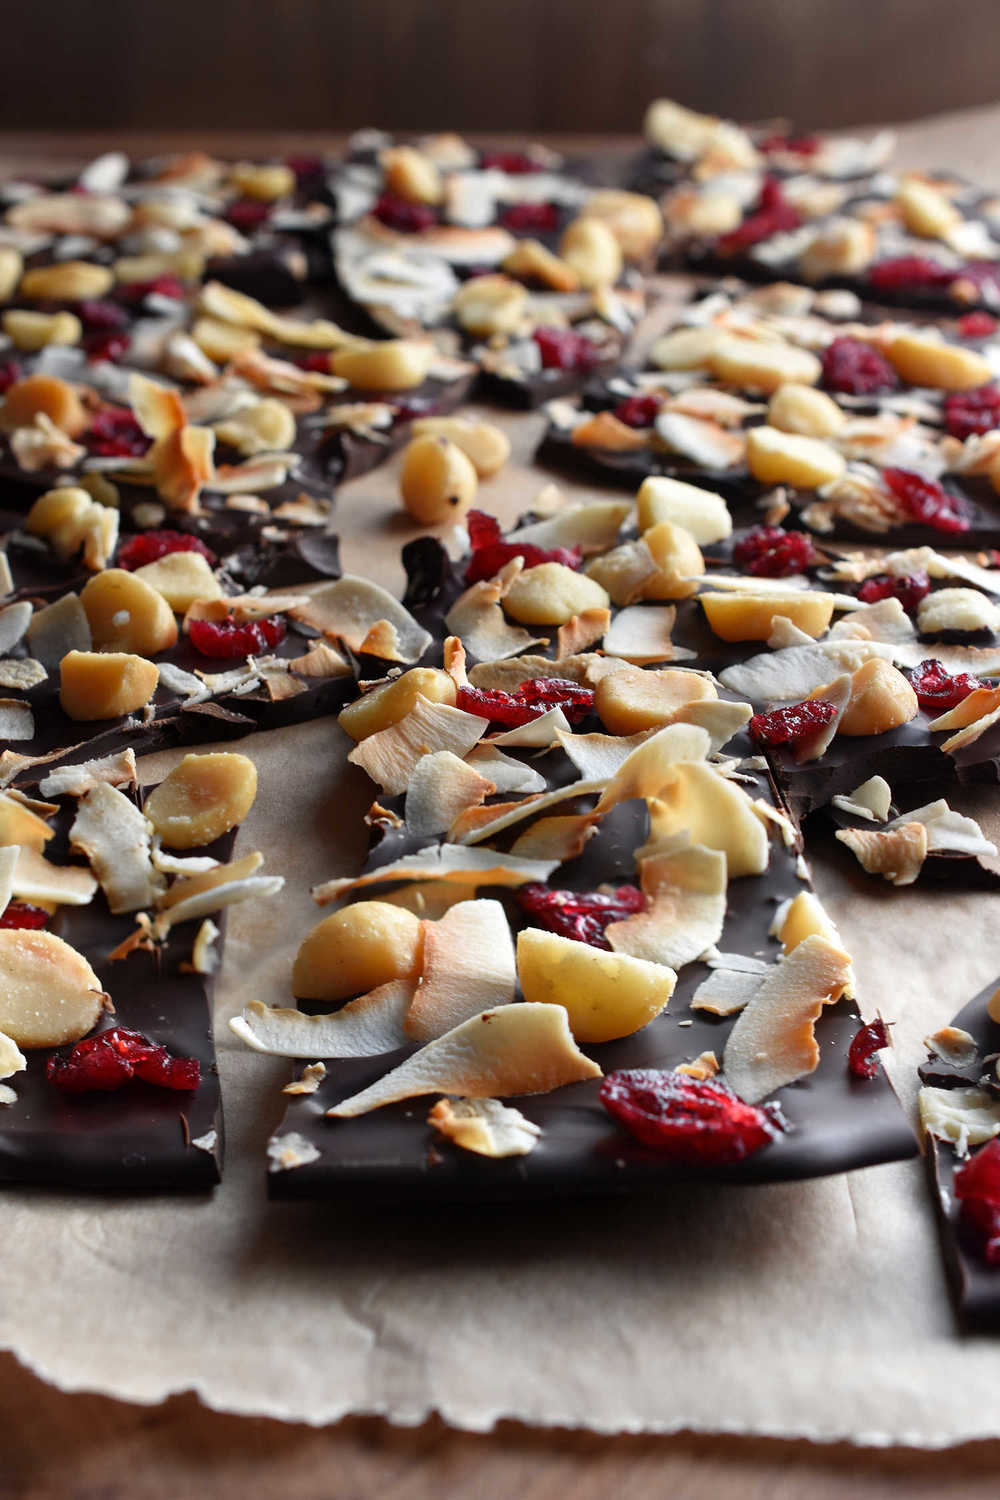 Coco Nutty Dark Bark: Eat some, and give some as a gift.